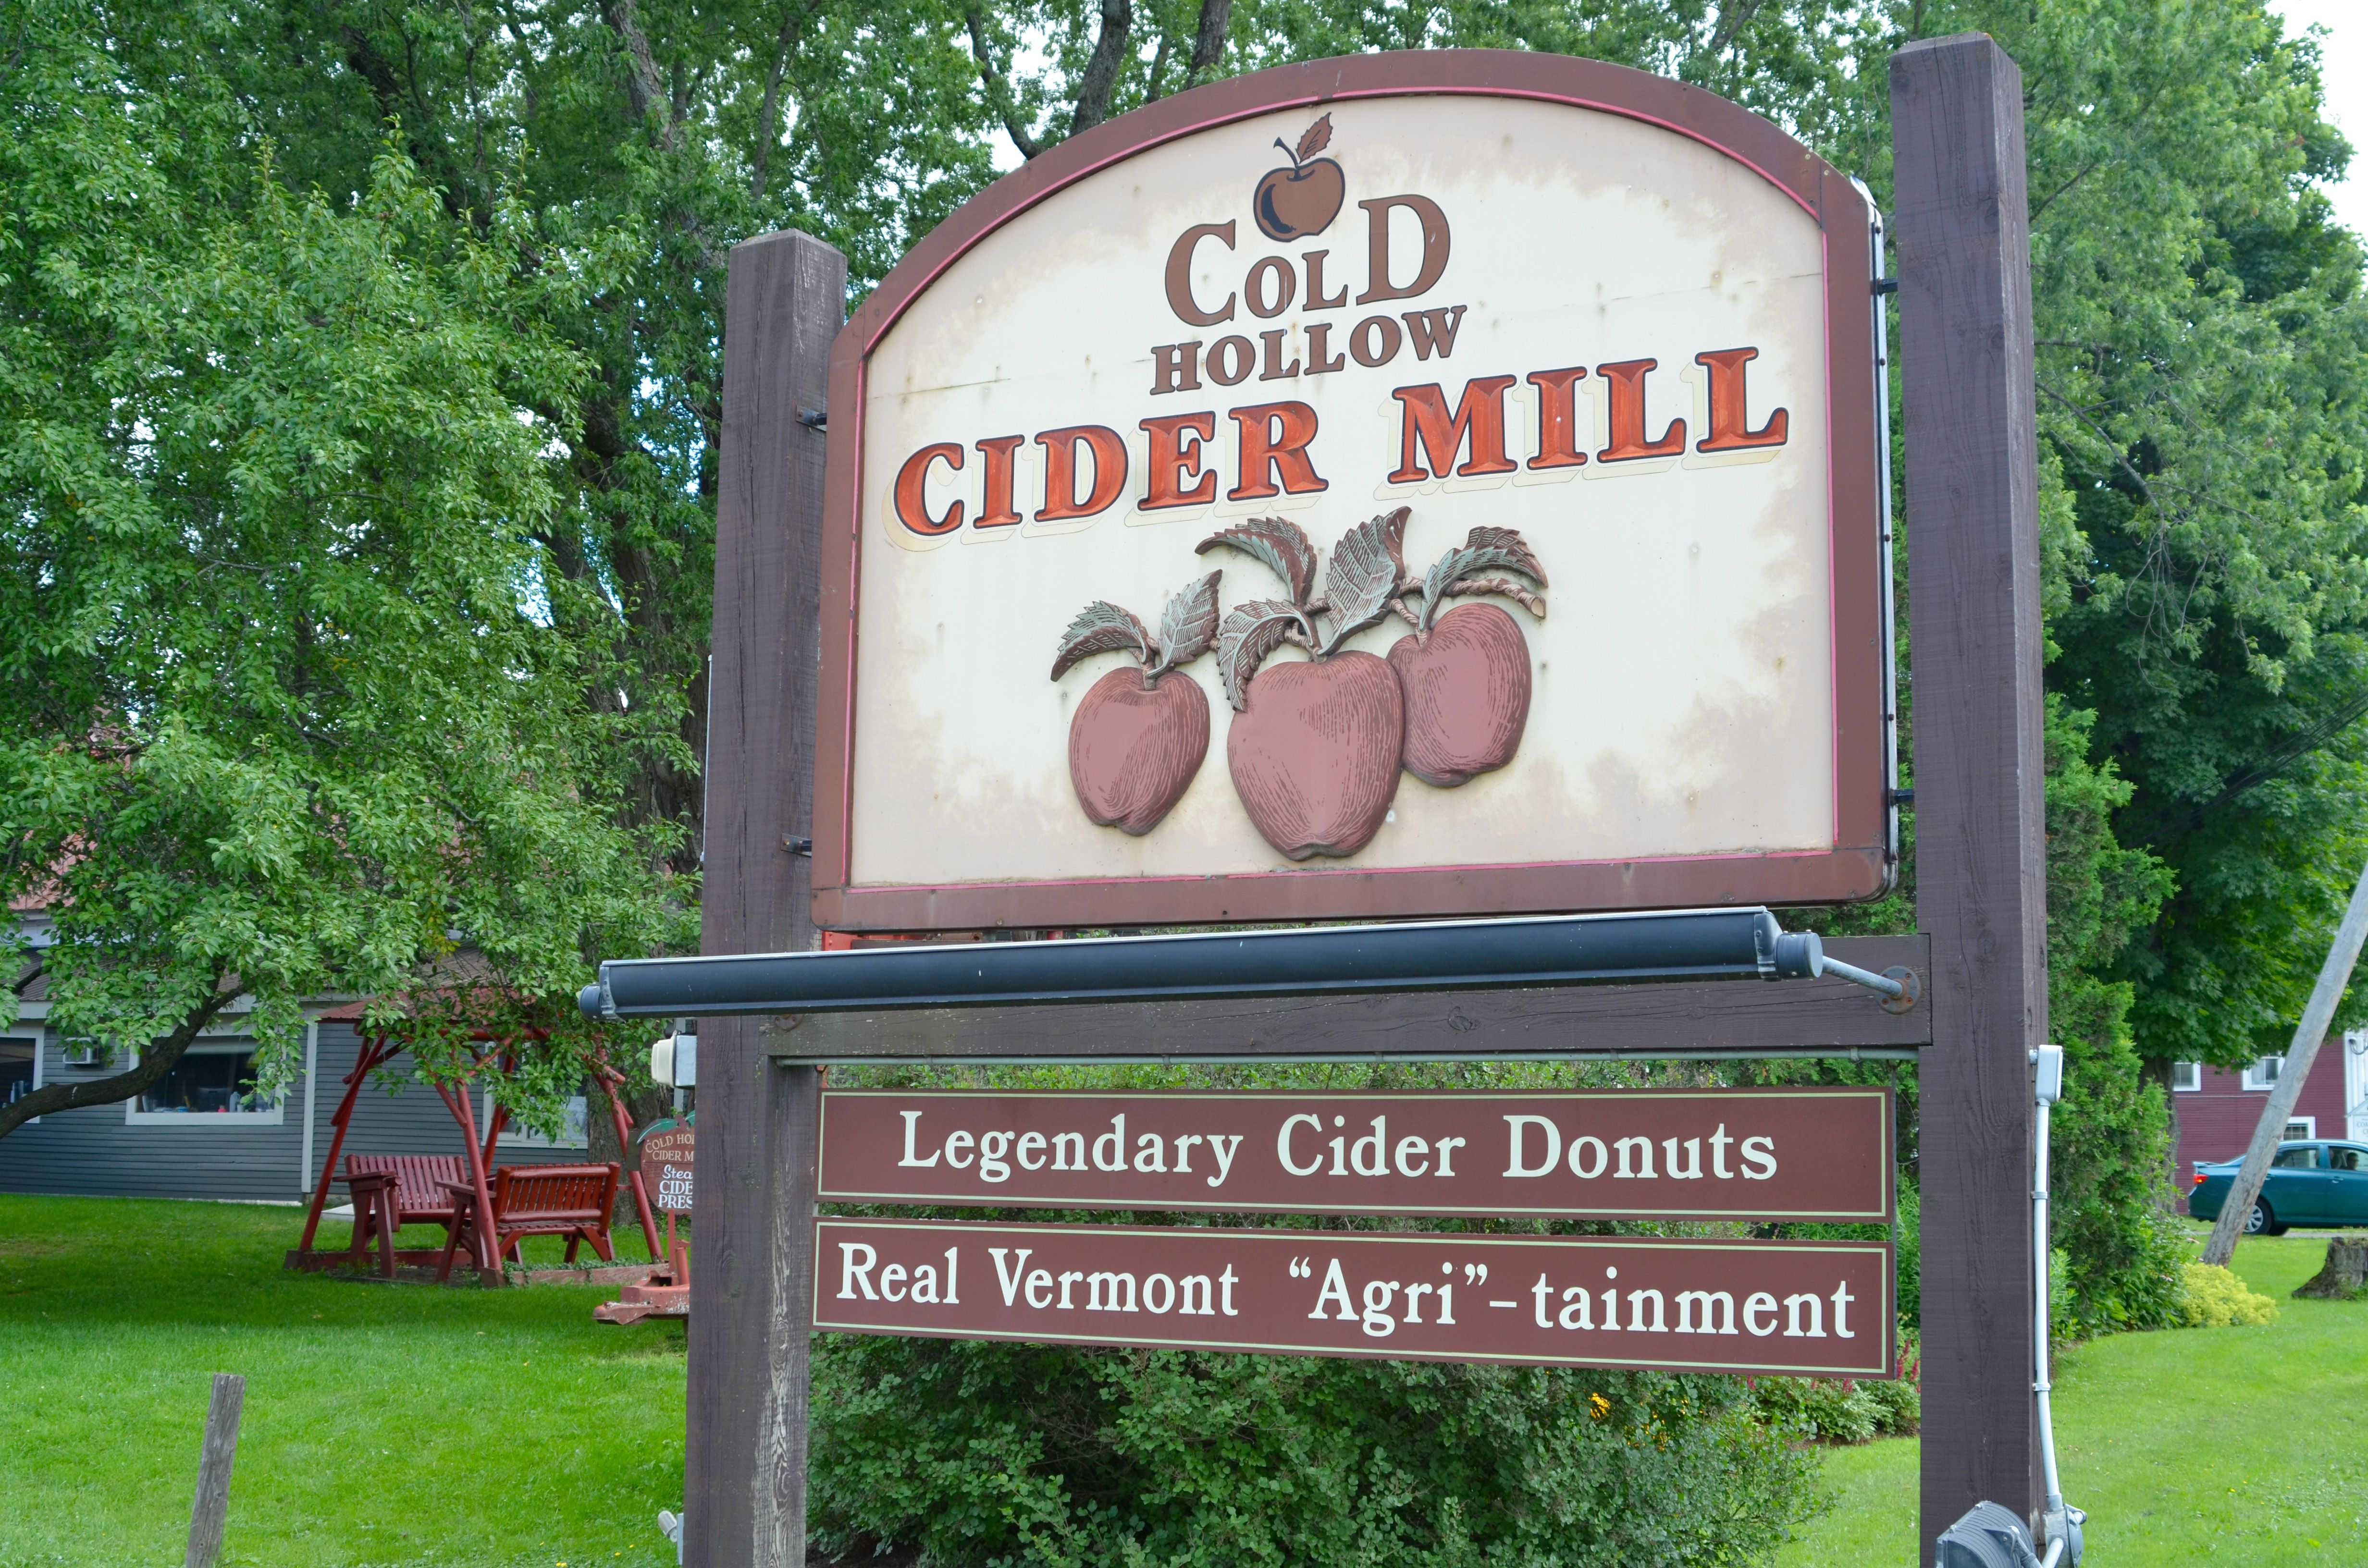 Cold Hollow Cider Mill in Waterbury, VT